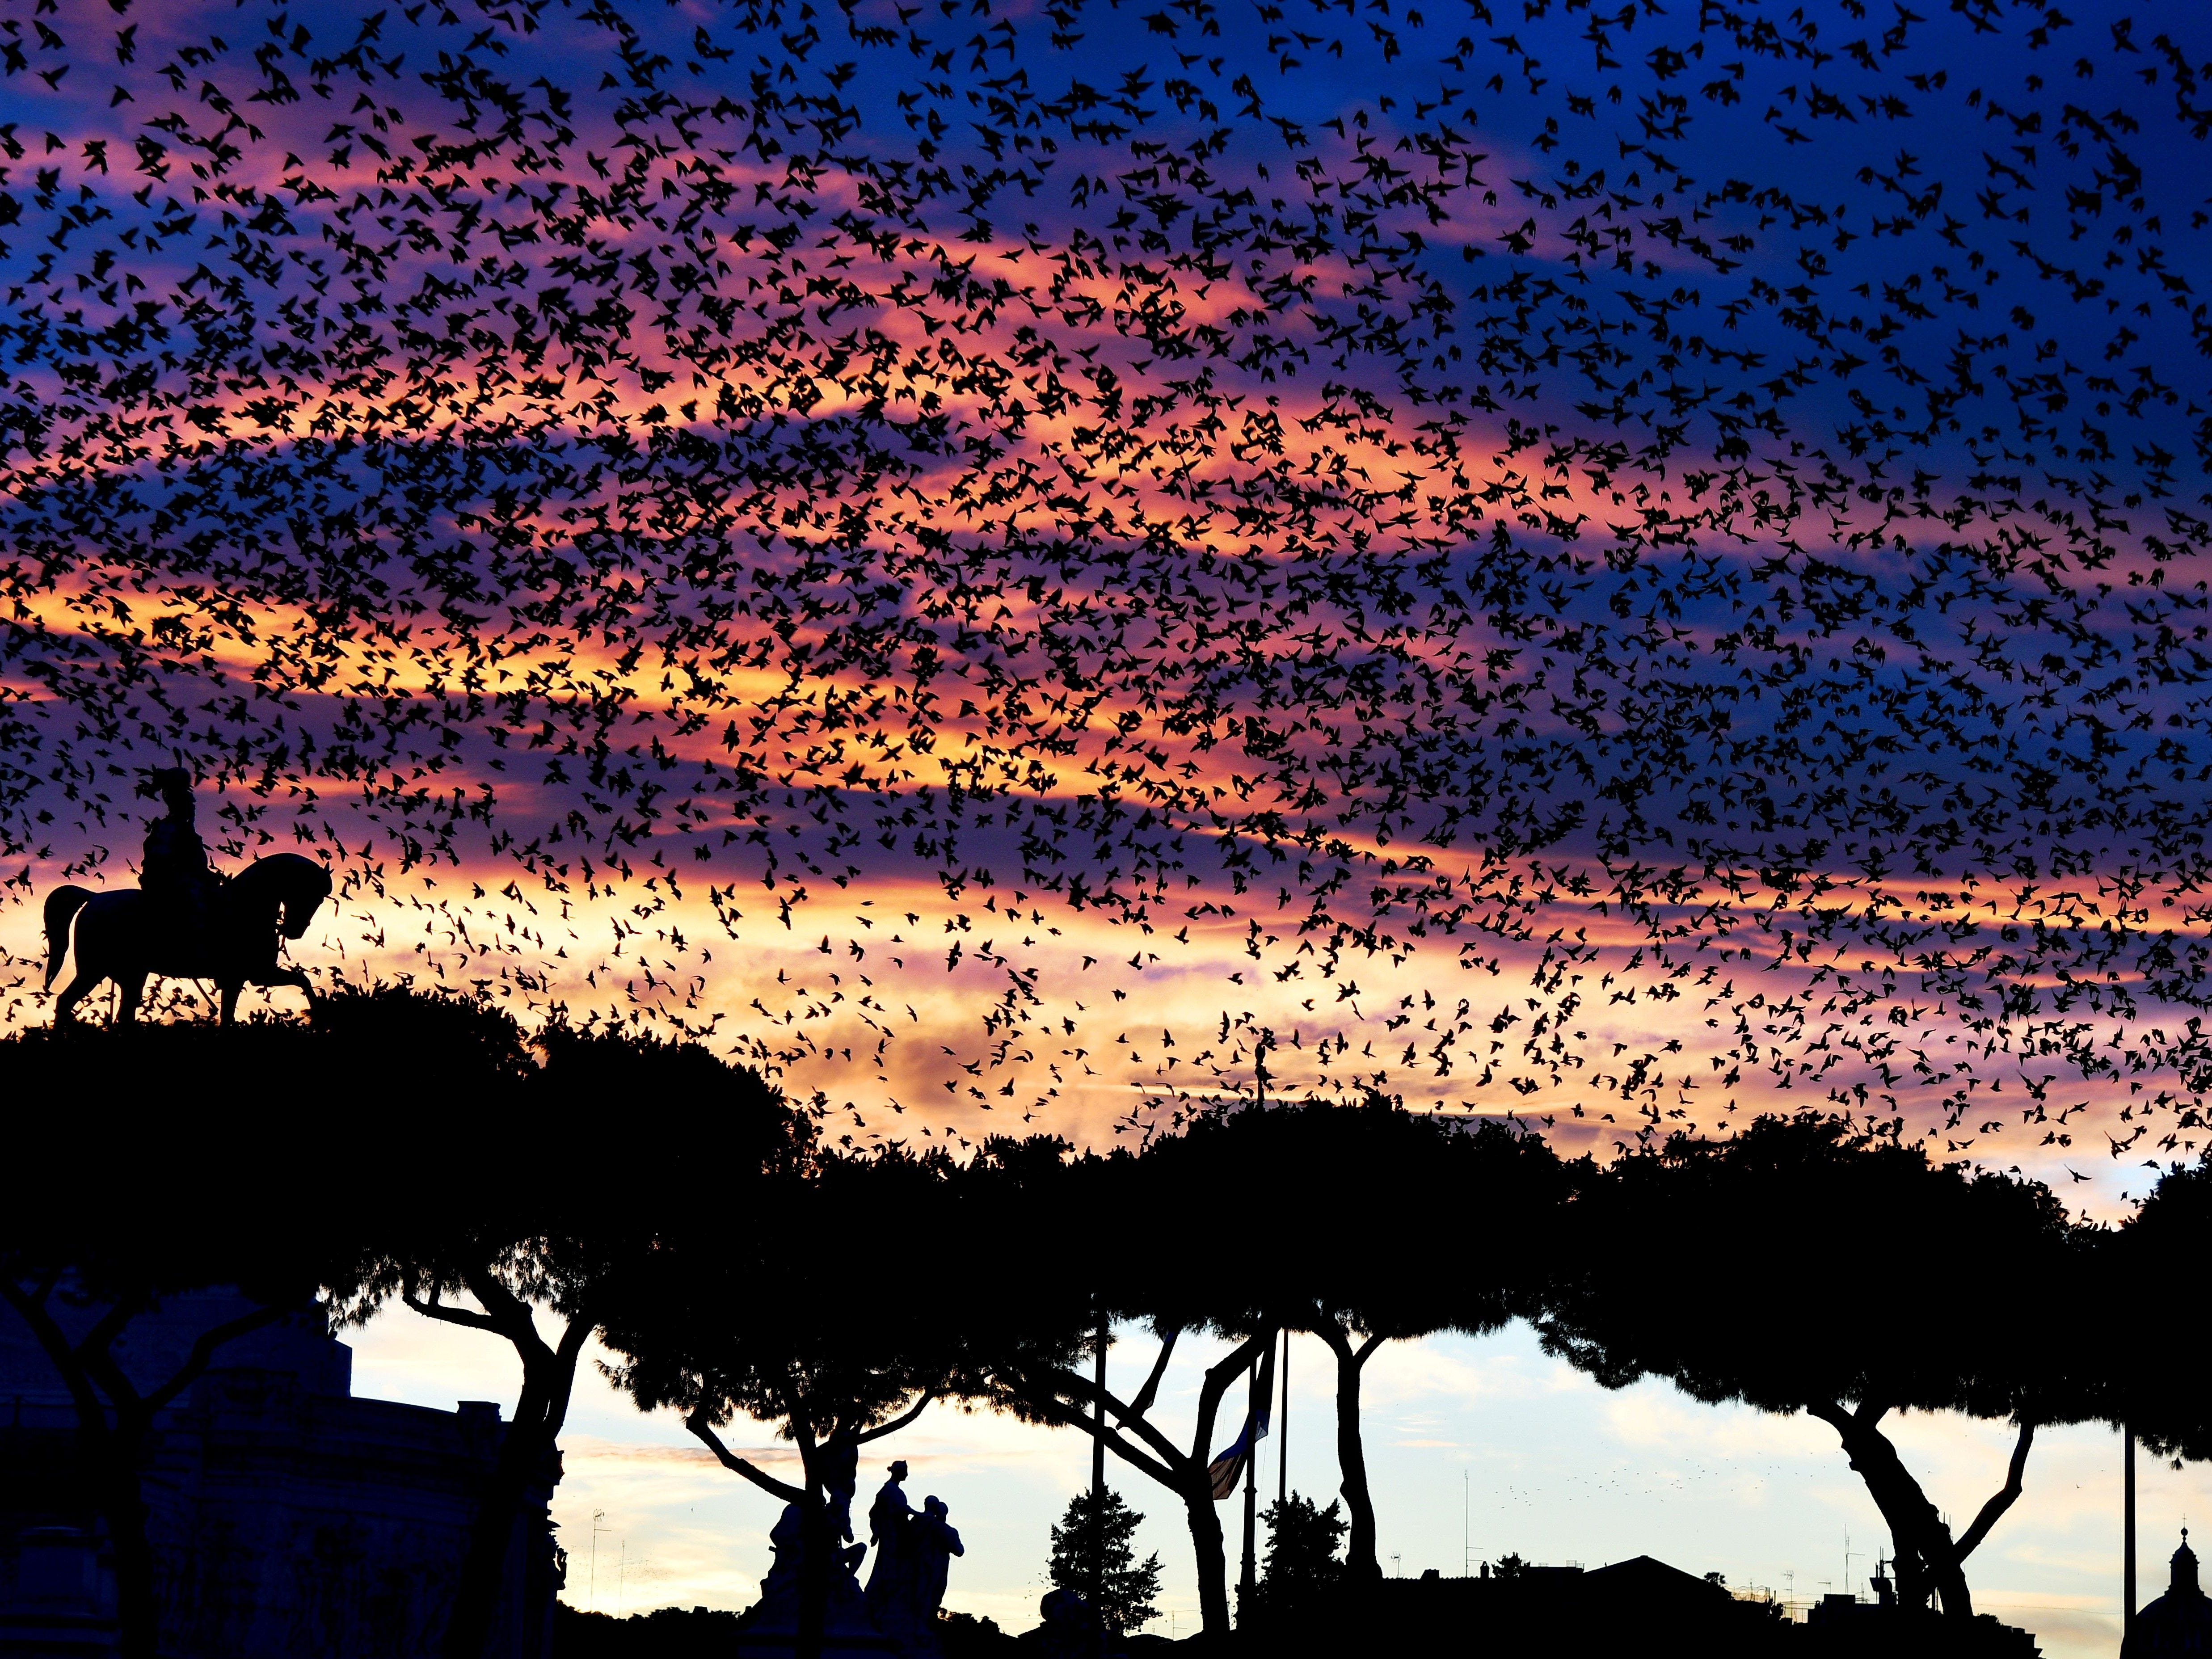 A swarm of starlings flies over the Altare della Patria monument (Unknown soldier) in the city centre of Rome during sunset, on November 27, 2018.